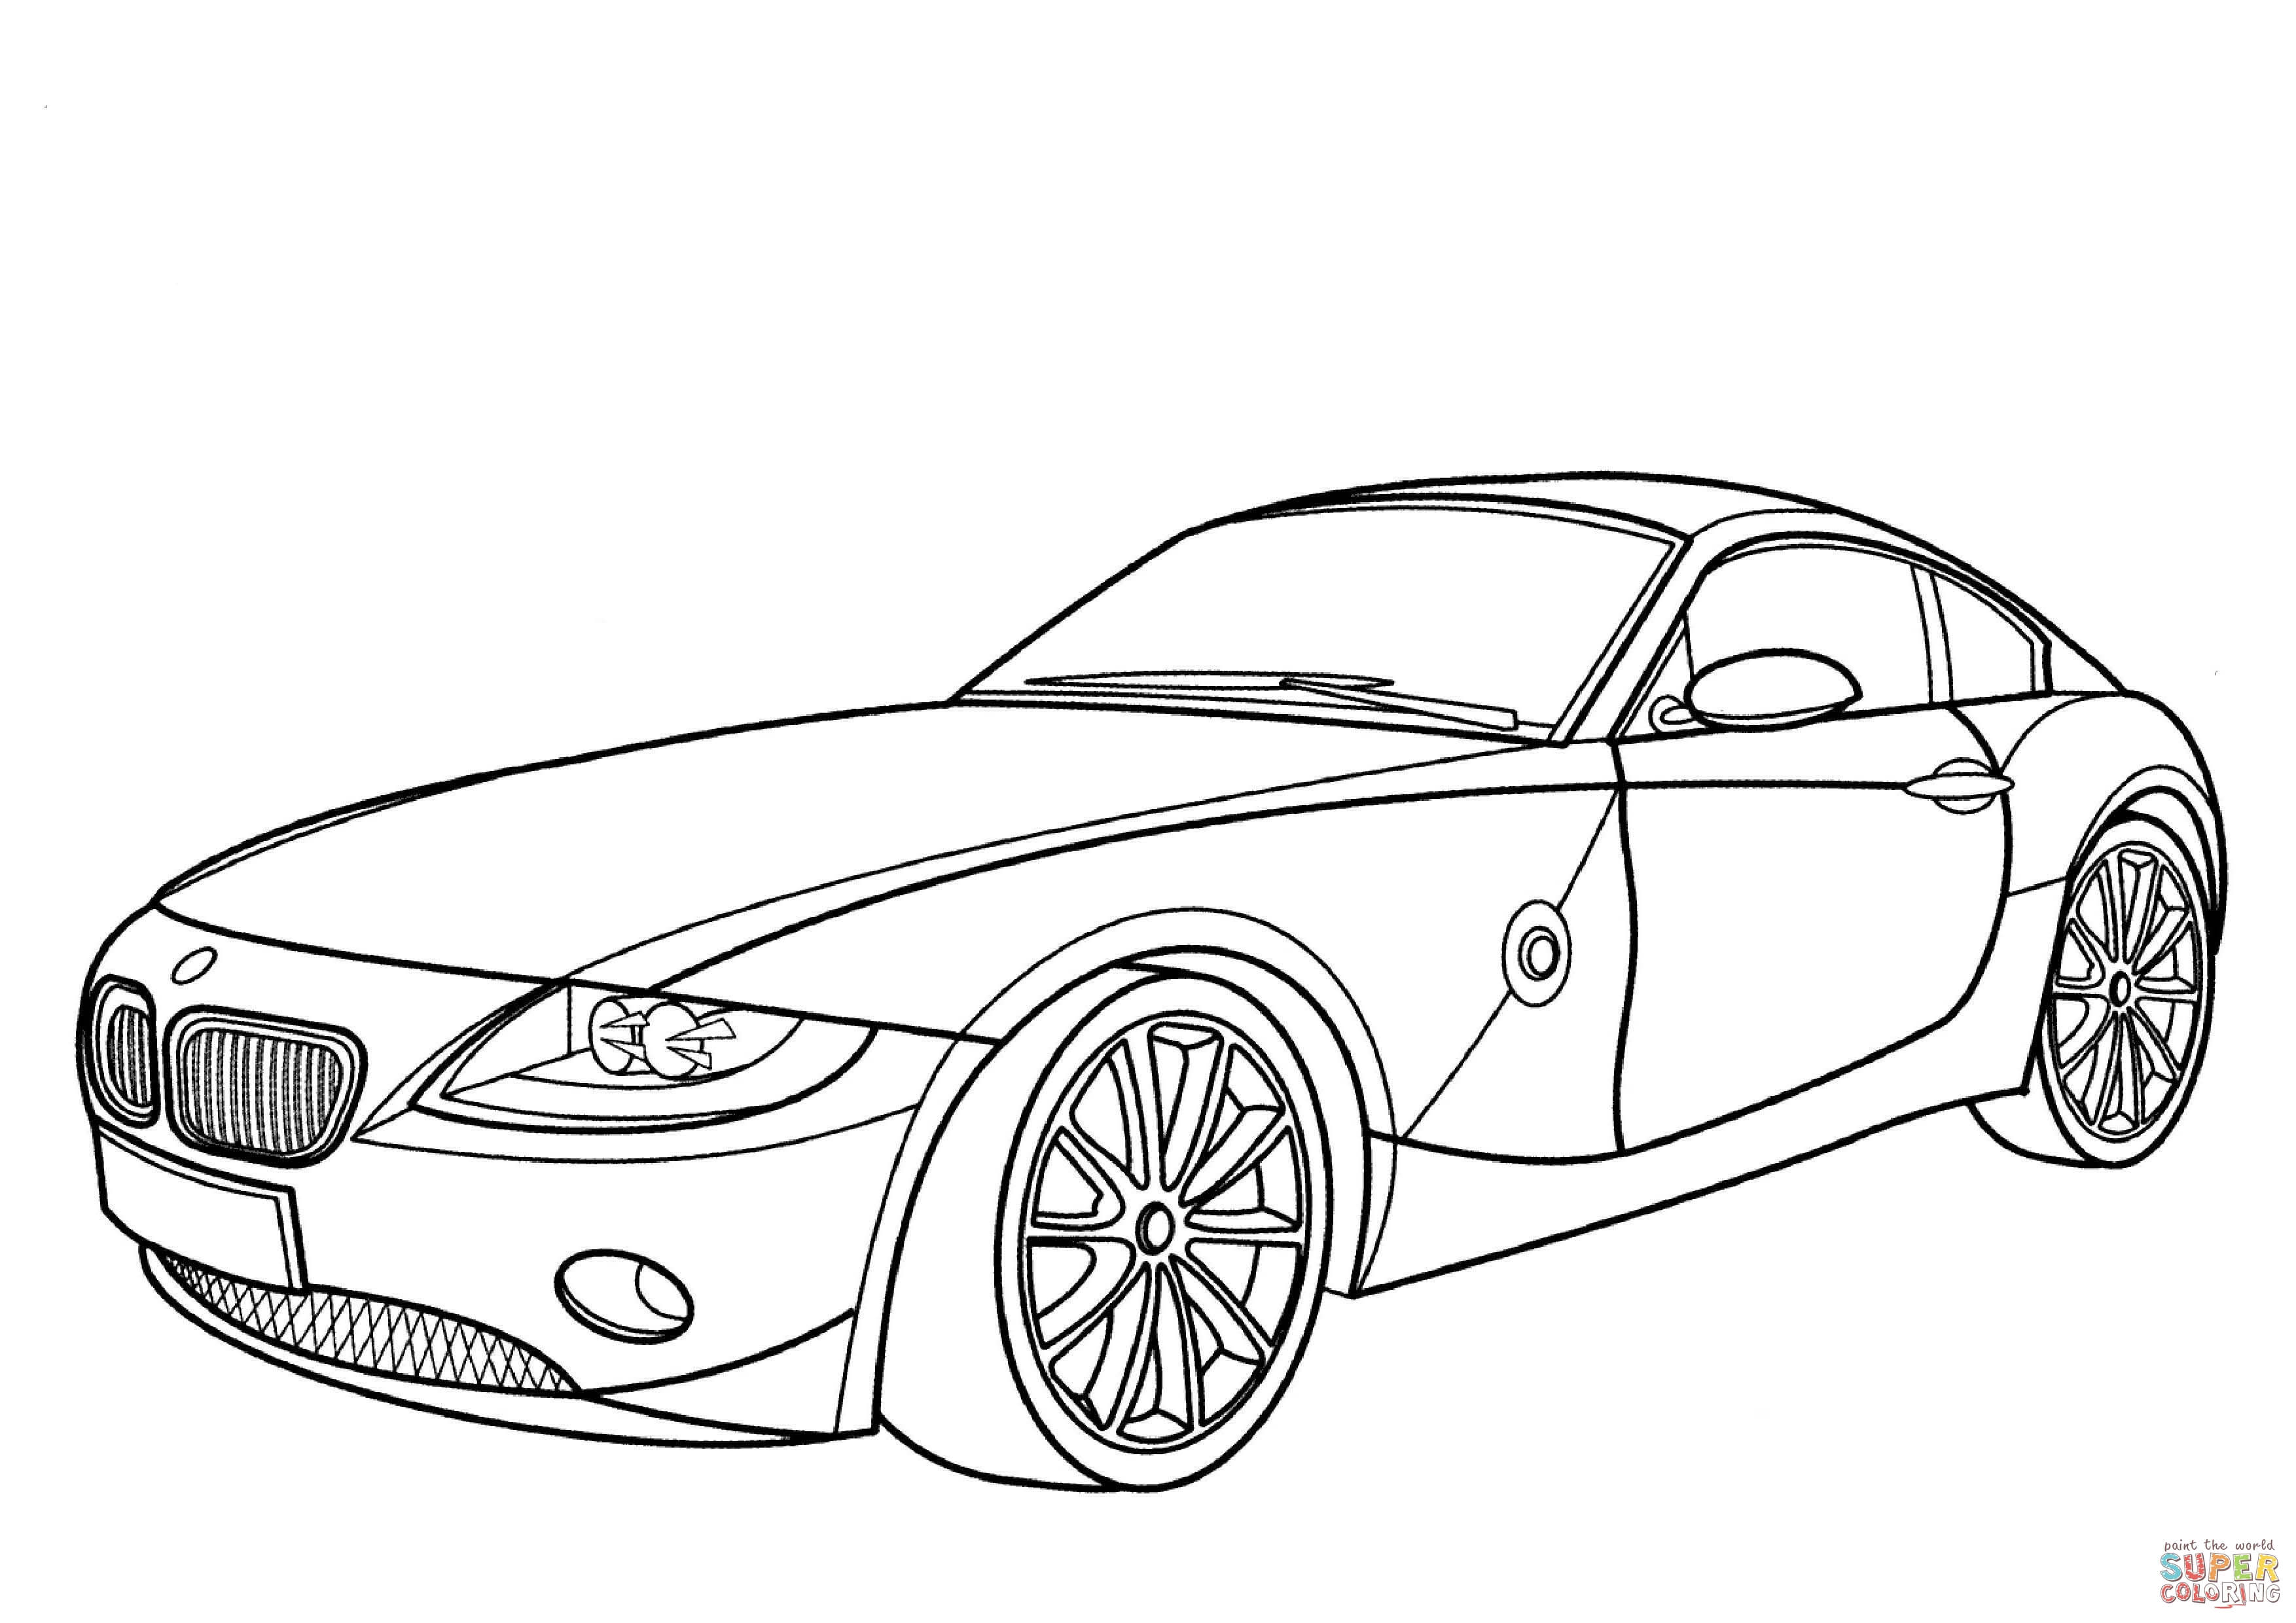 coloring cars bmw bmw z4 coupe coloring page free printable coloring pages coloring cars bmw